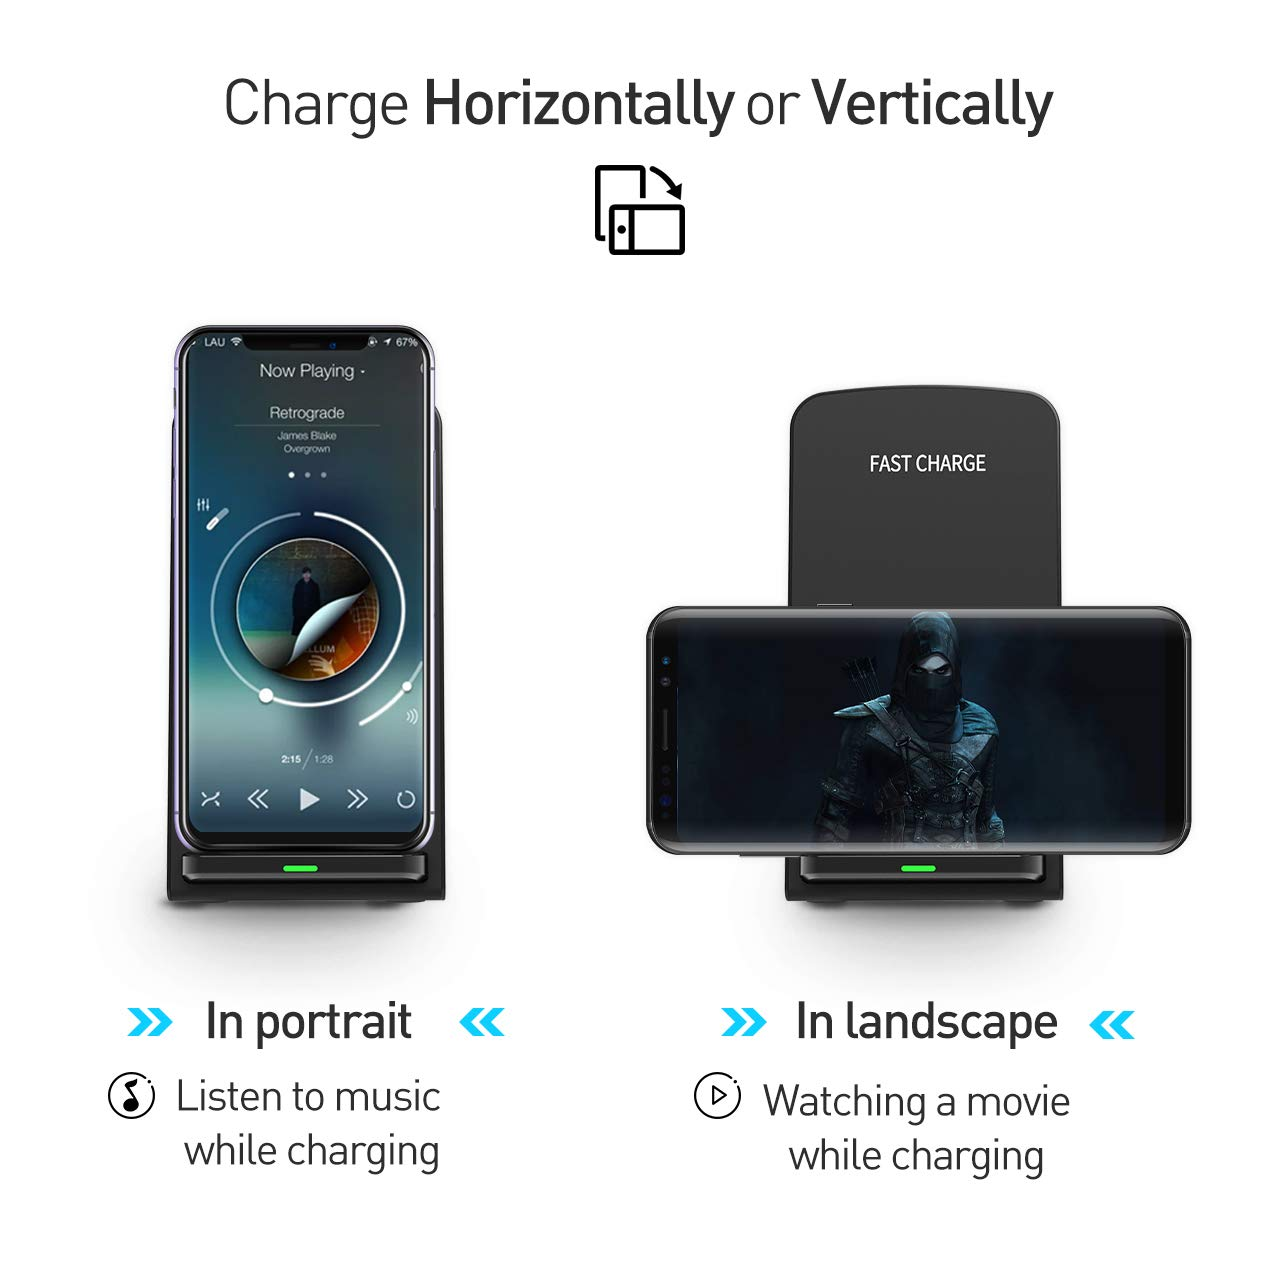 Seneo (Upgraded) Wireless Charger, Qi Certified Fast Wireless Charger Stand with QC 3.0 Adapter for Galaxy S9/S9+ Note 8/5 S8/S8+ S7/S7 Edge S6 Edge+, Standard Qi Charger for iPhoneX/8/8 Plus by Seneo (Image #5)